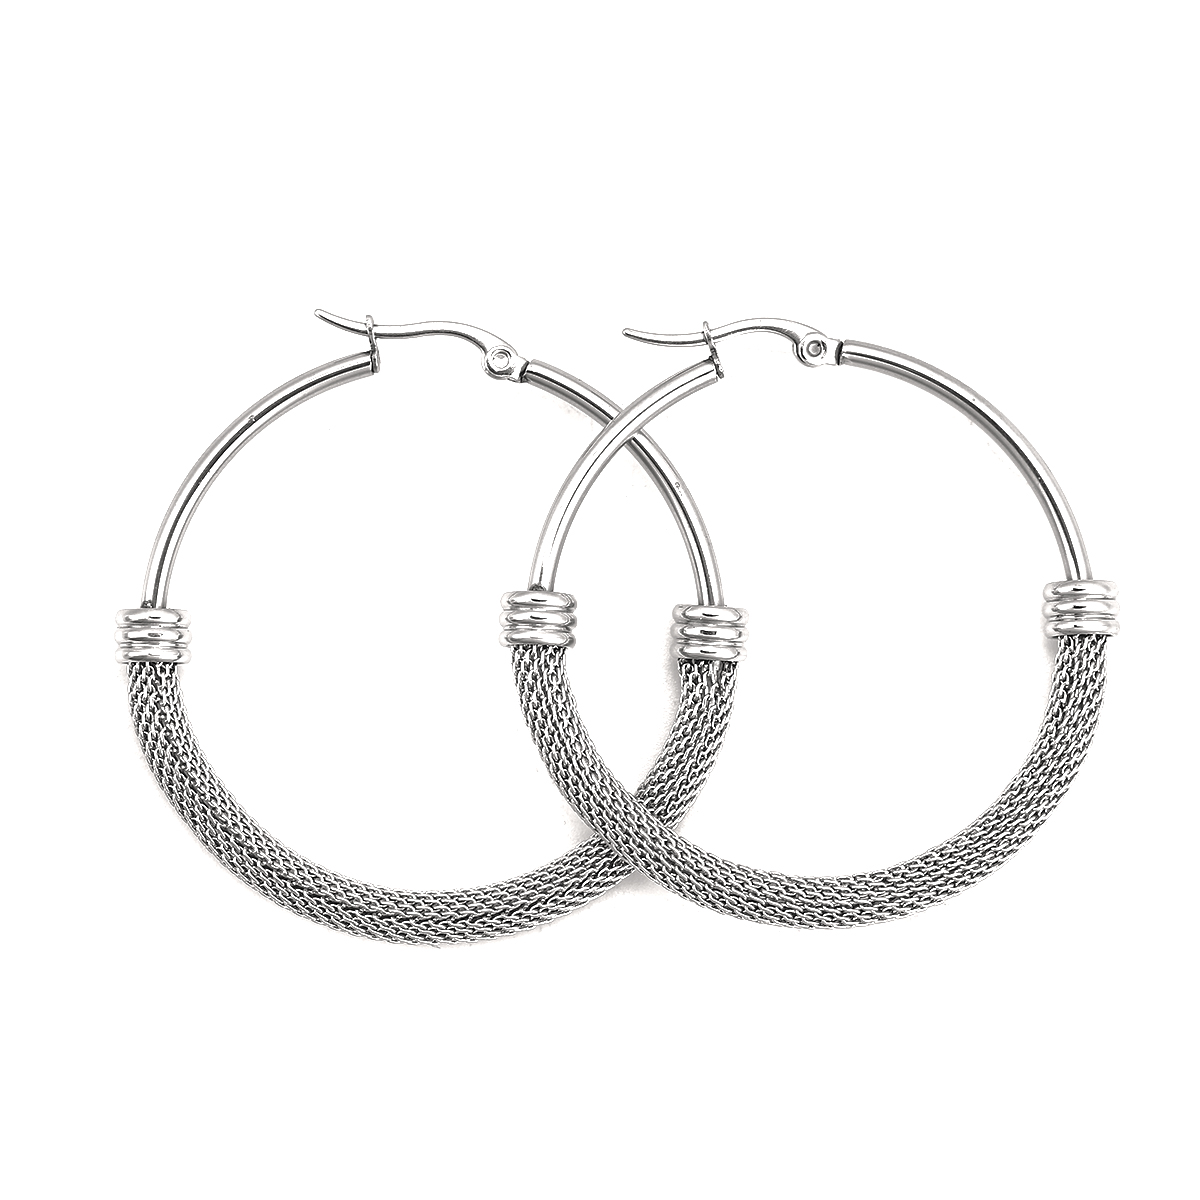 Hot 304 Stainless Steel Hoop Earrings Silver Color  Round Fashion female Earrings  For women 2021 , 1 Pair